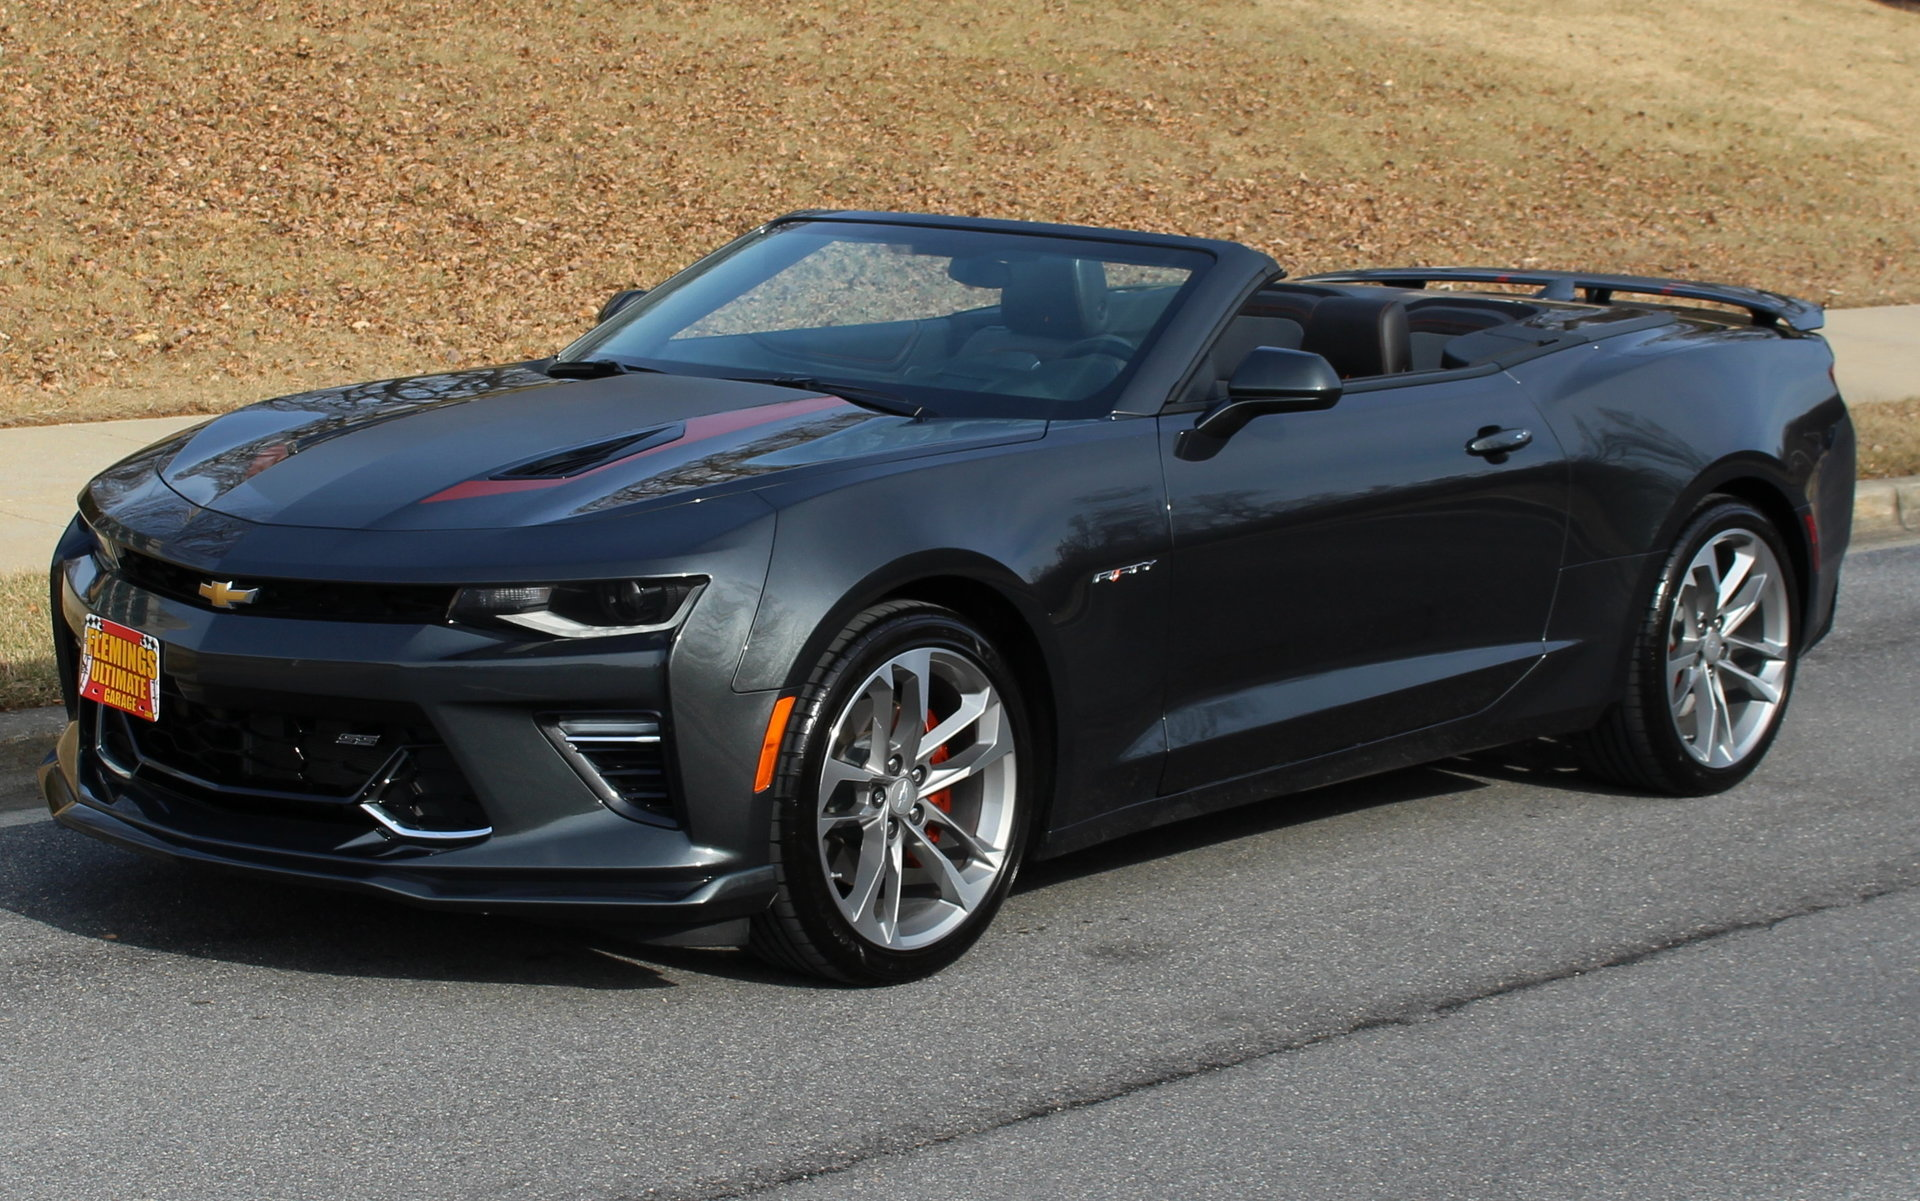 2017 chevrolet camaro 2017 chevrolet camaro 50th anniversary edition for sale to buy or. Black Bedroom Furniture Sets. Home Design Ideas